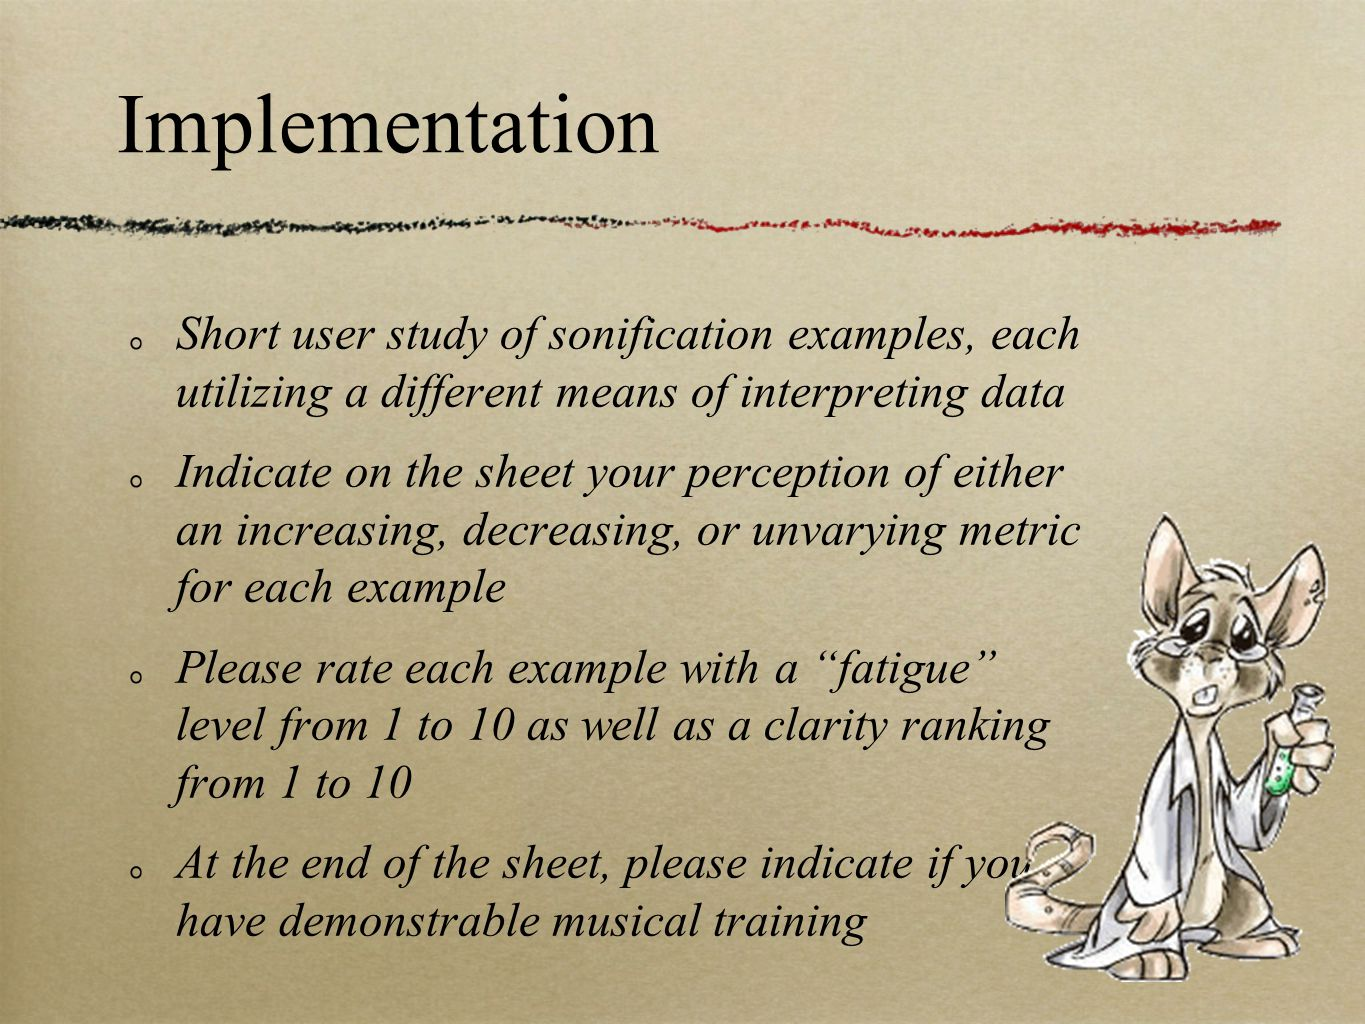 Short user study of sonification examples, each utilizing a different means of interpreting data Indicate on the sheet your perception of either an increasing, decreasing, or unvarying metric for each example Please rate each example with a fatigue level from 1 to 10 as well as a clarity ranking from 1 to 10 At the end of the sheet, please indicate if you have demonstrable musical training Implementation